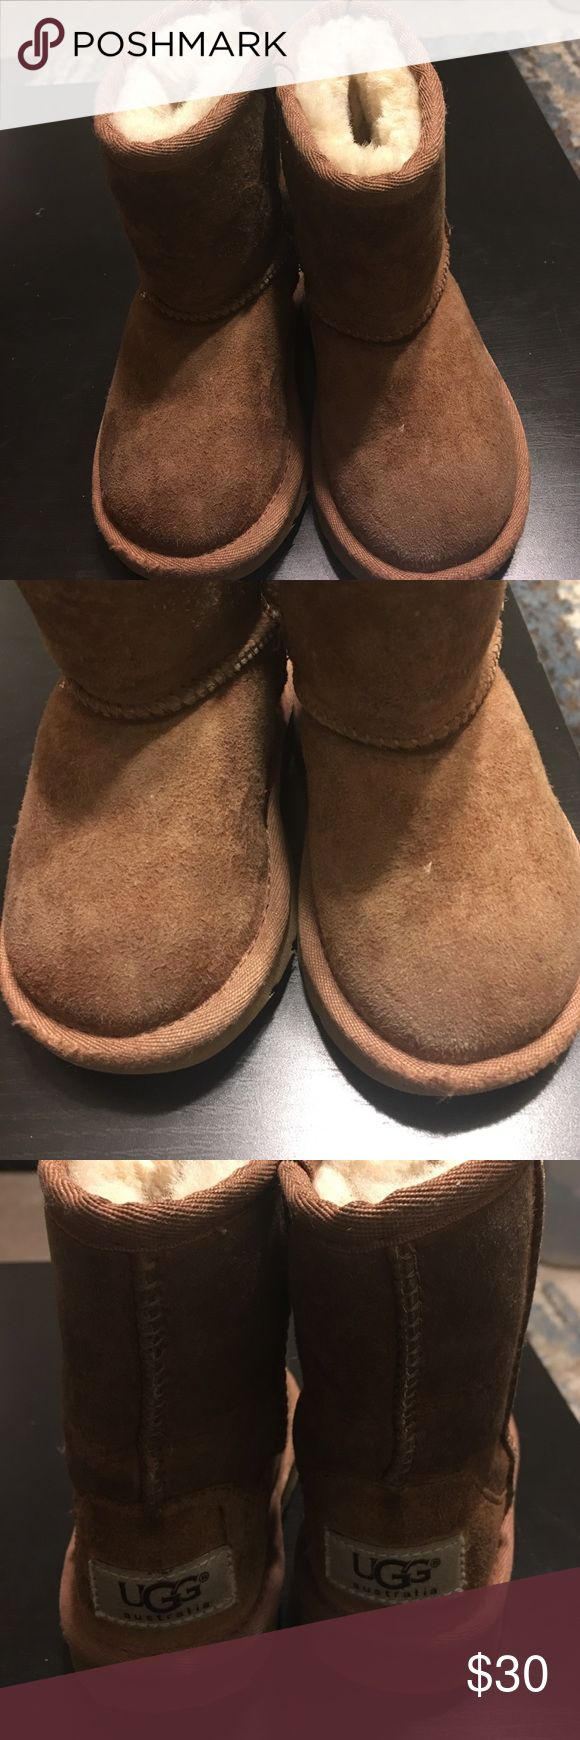 Kids ugg boots Kids ugg boots,excellent condition,need to be cleaned a little. UGG Shoes